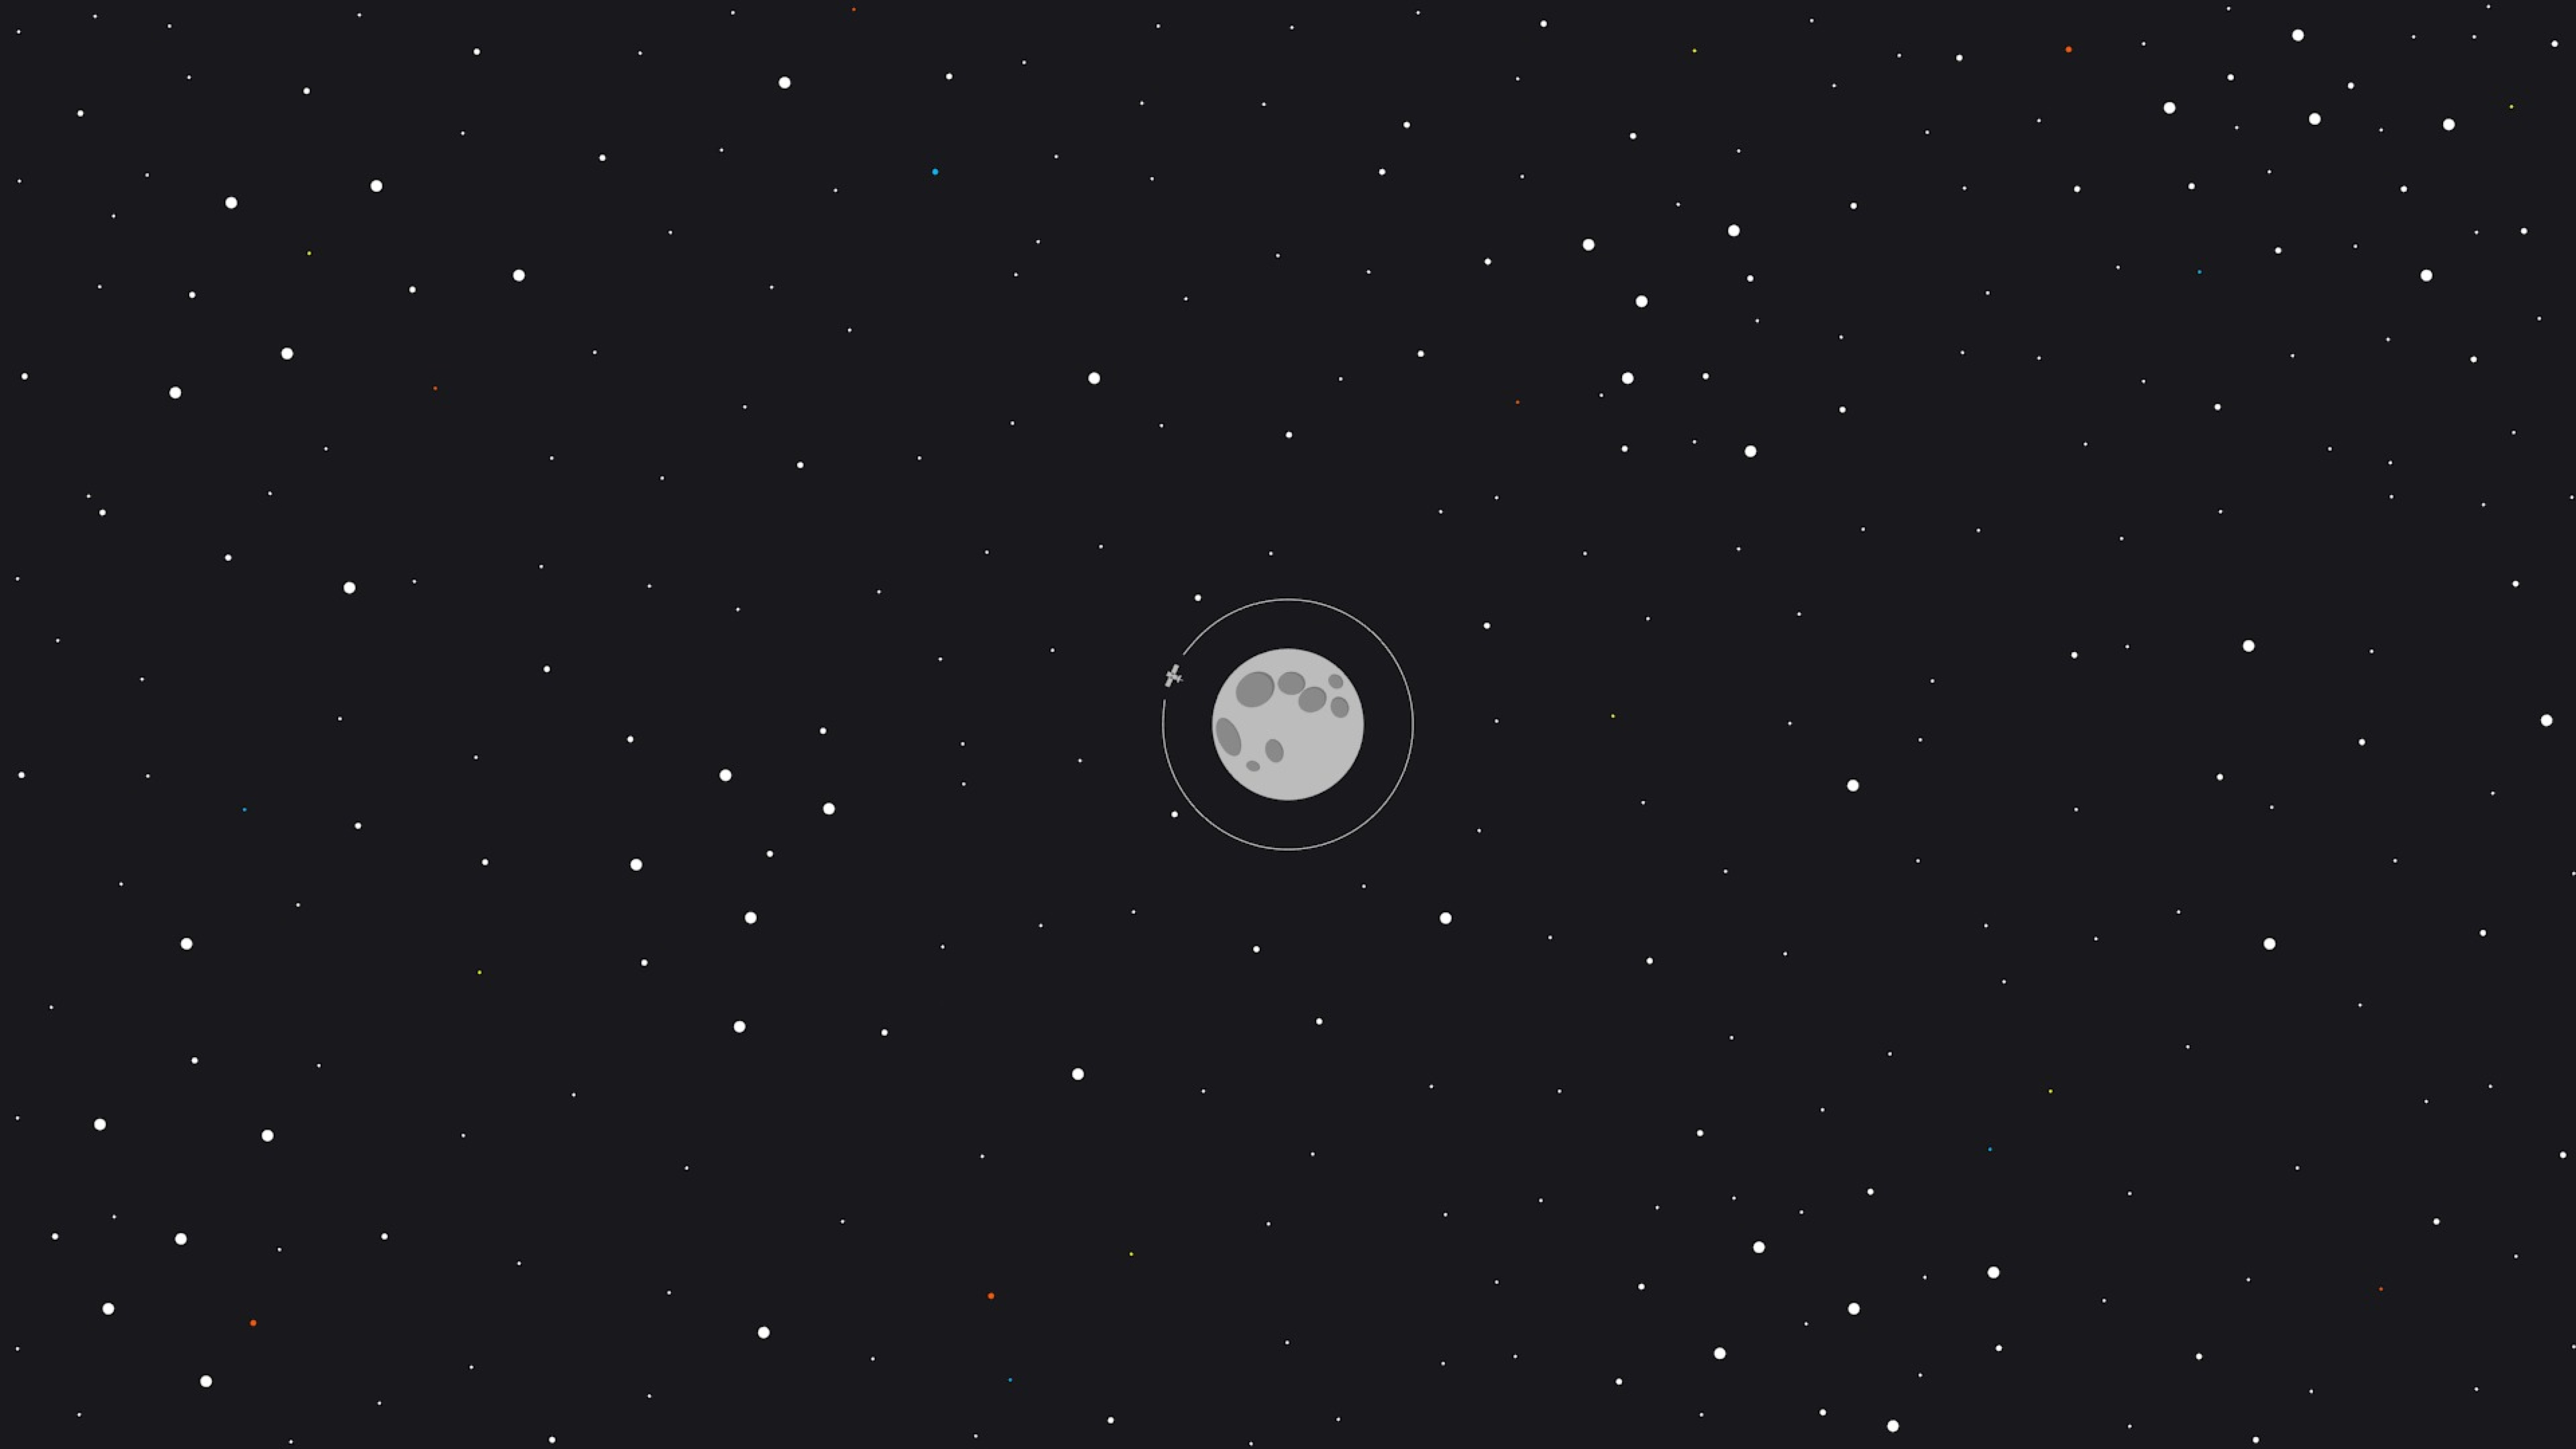 Moon space minimal full hd wallpaper for Minimal space